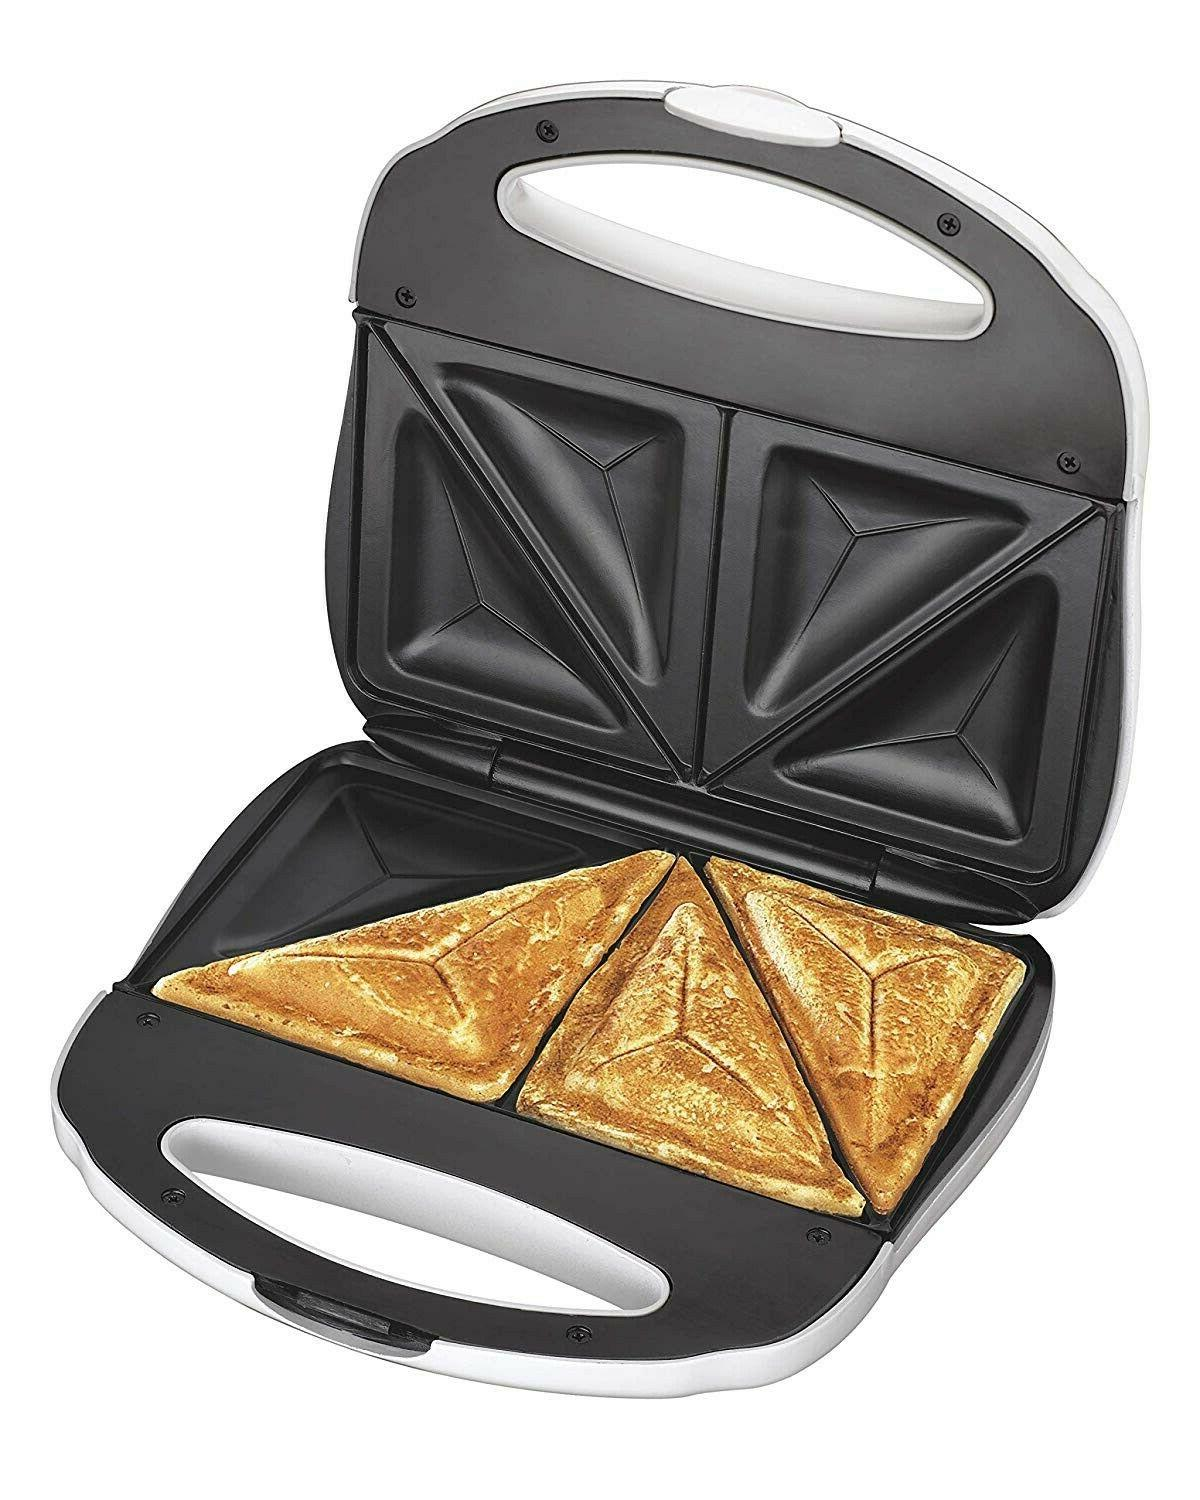 Proctor Silex Sandwich Toaster Omelet And Turnover Maker